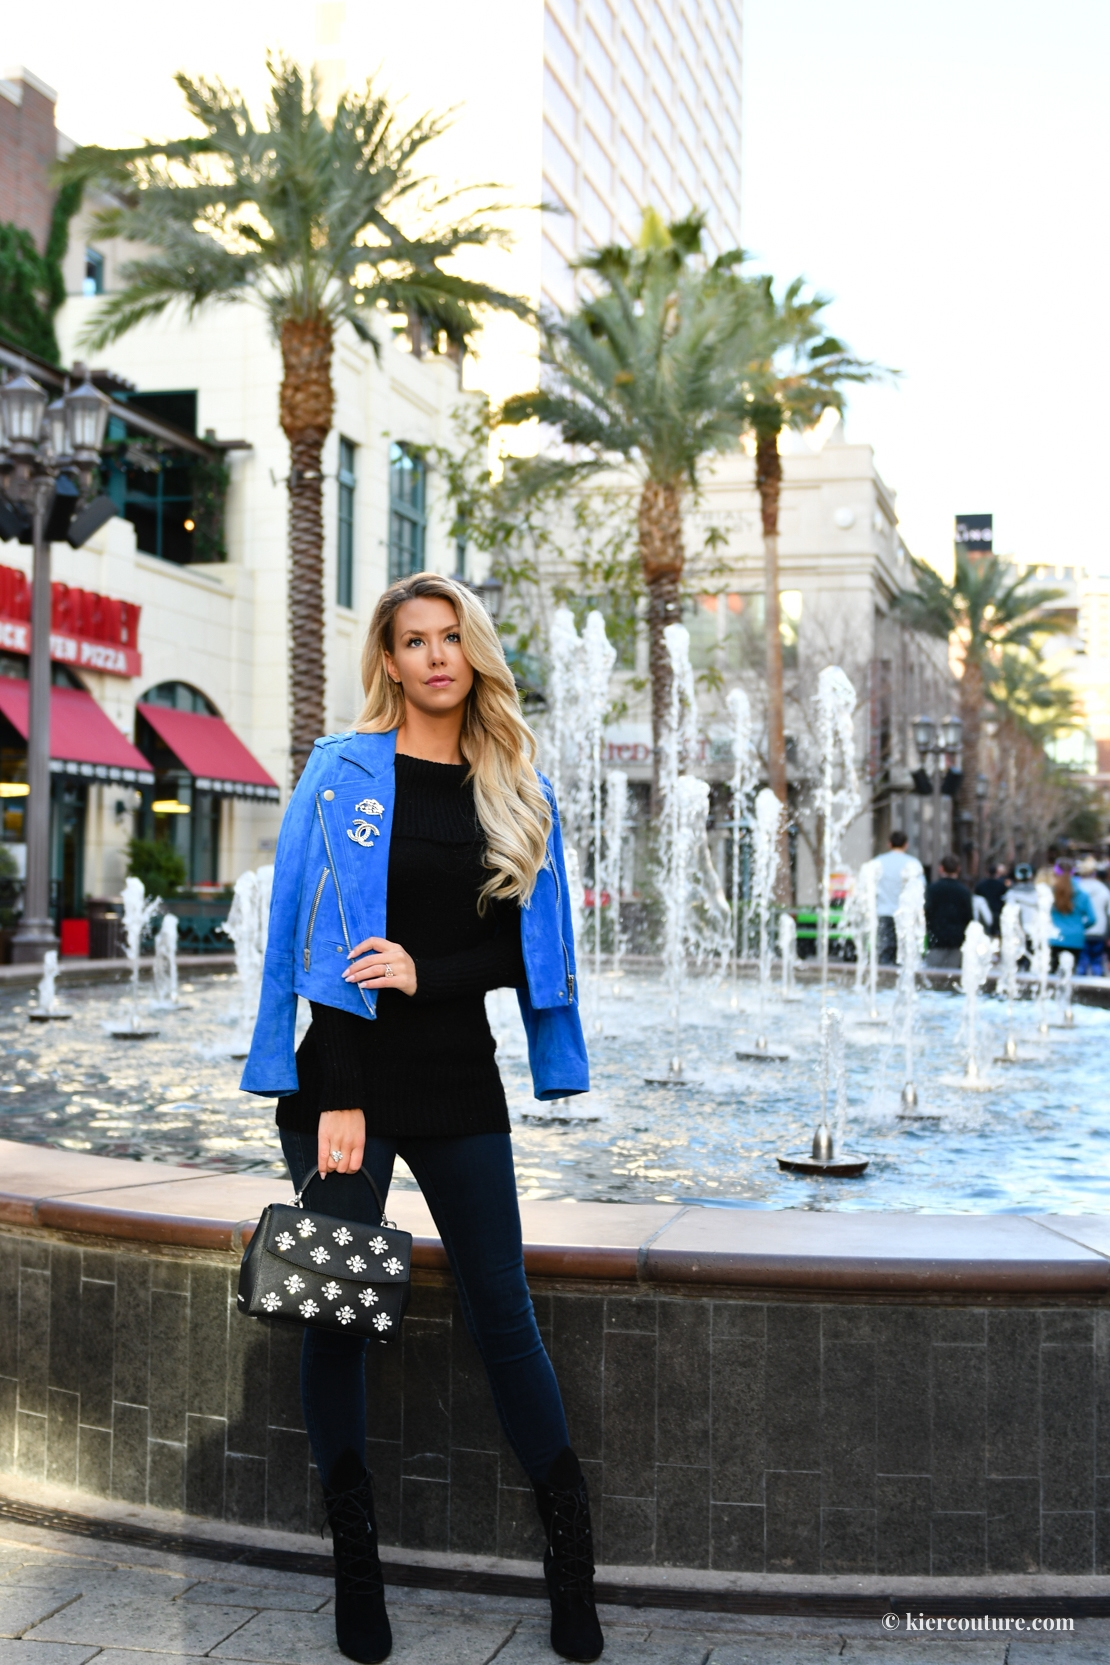 Las Vegas fashion blogger